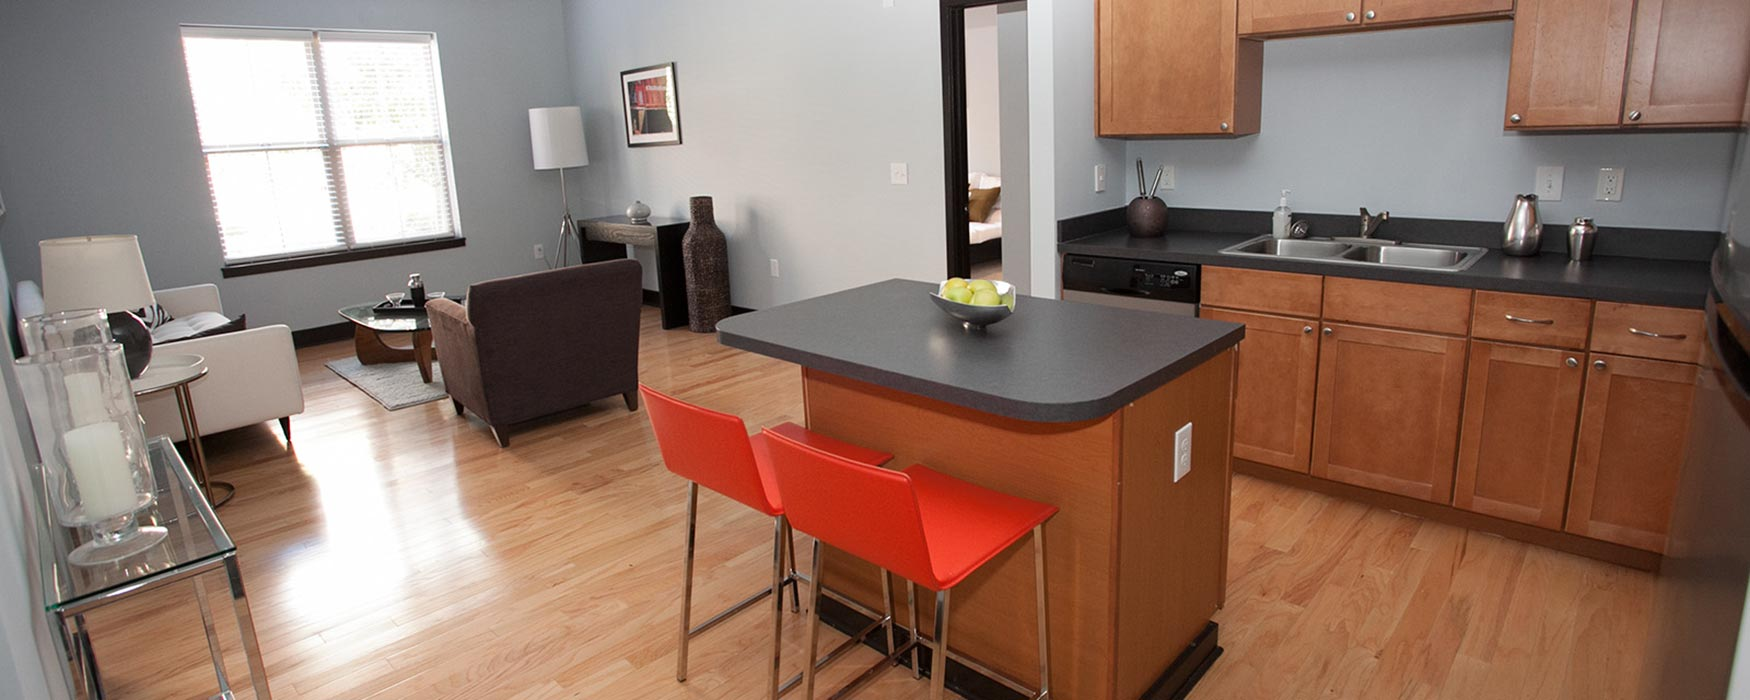 LC RiverSouth | Downtown Columbus Apartments | Georgetown Kitchen